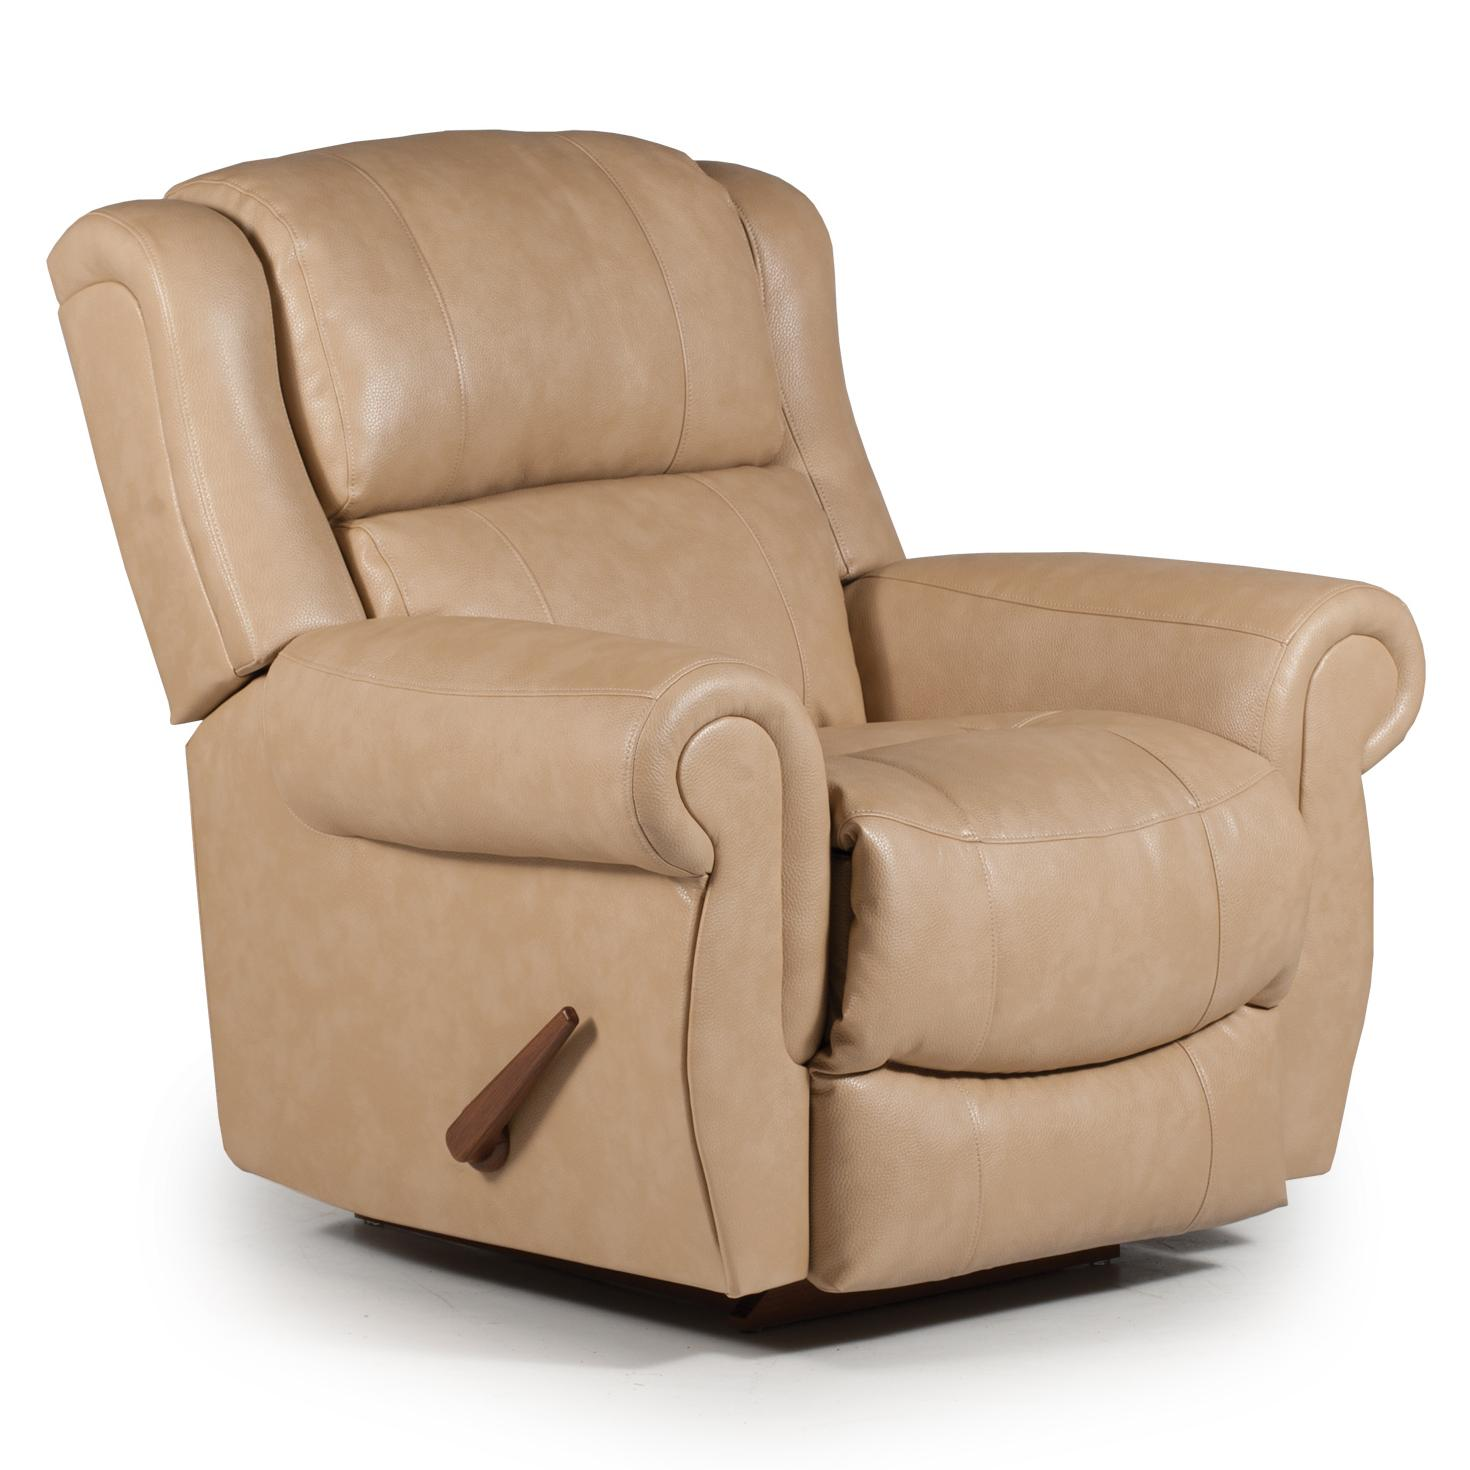 Best Home Furnishings Recliners - Medium Terrill Space Saver Recliner - Item Number: 8N74BL